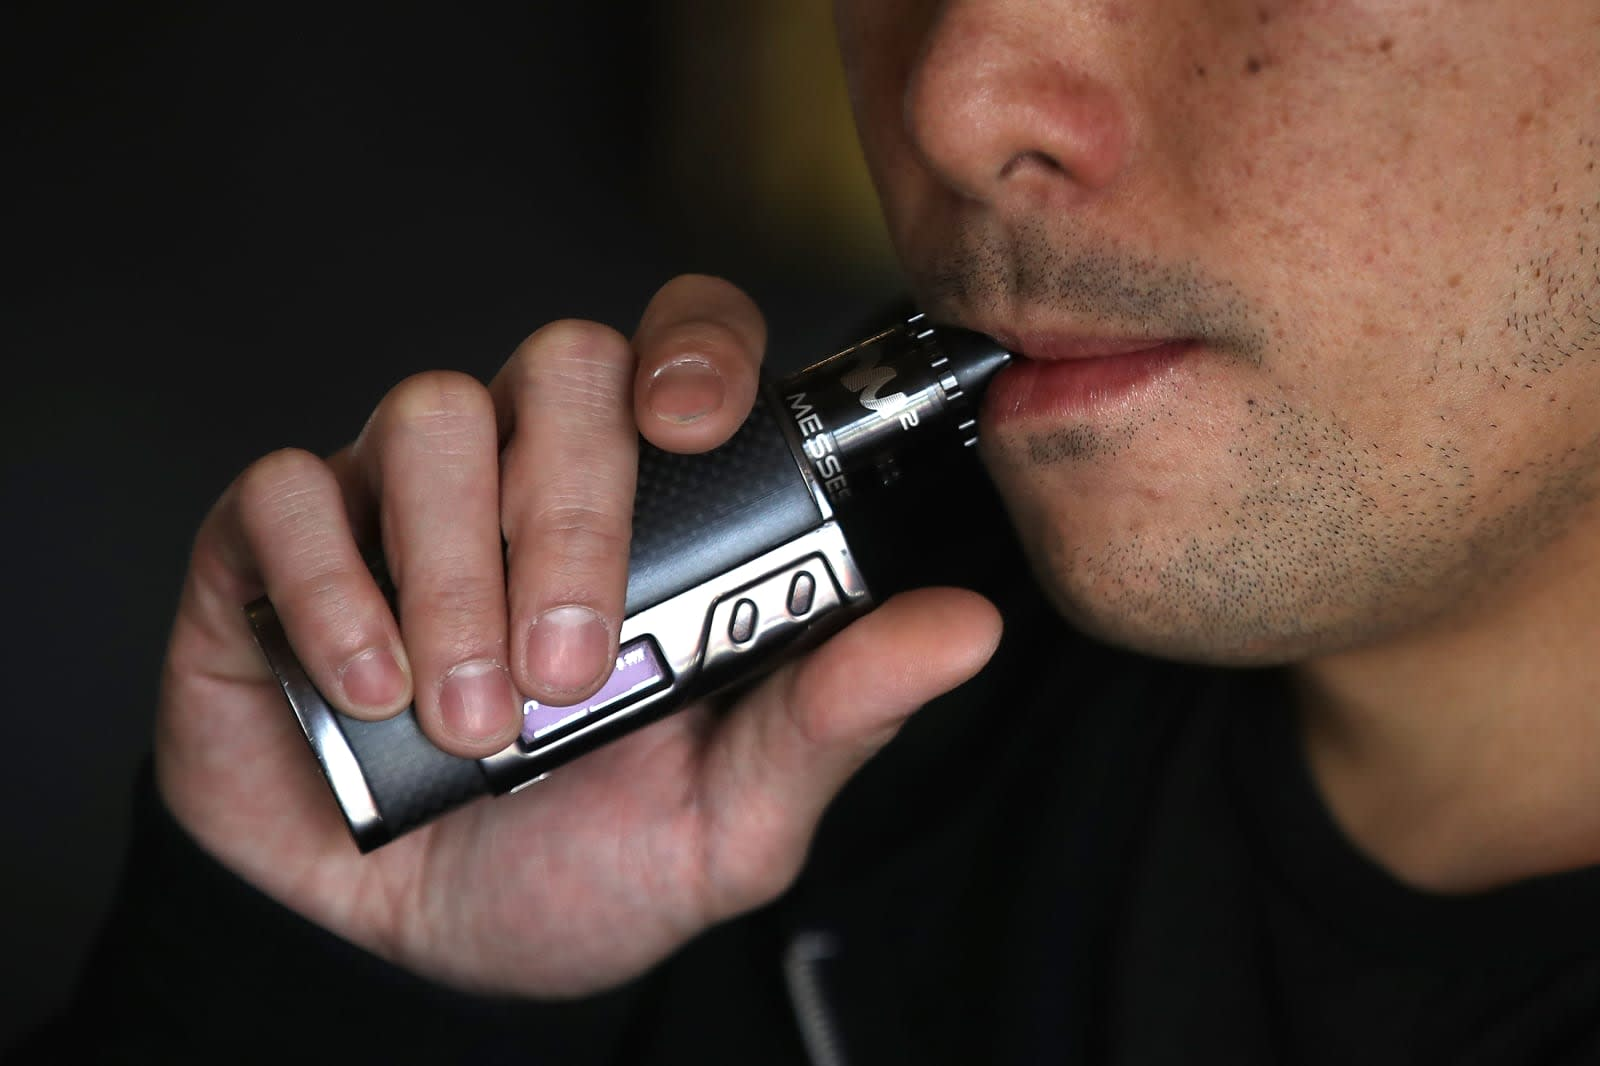 San Francisco is officially the first US city to ban e-cigarette sales